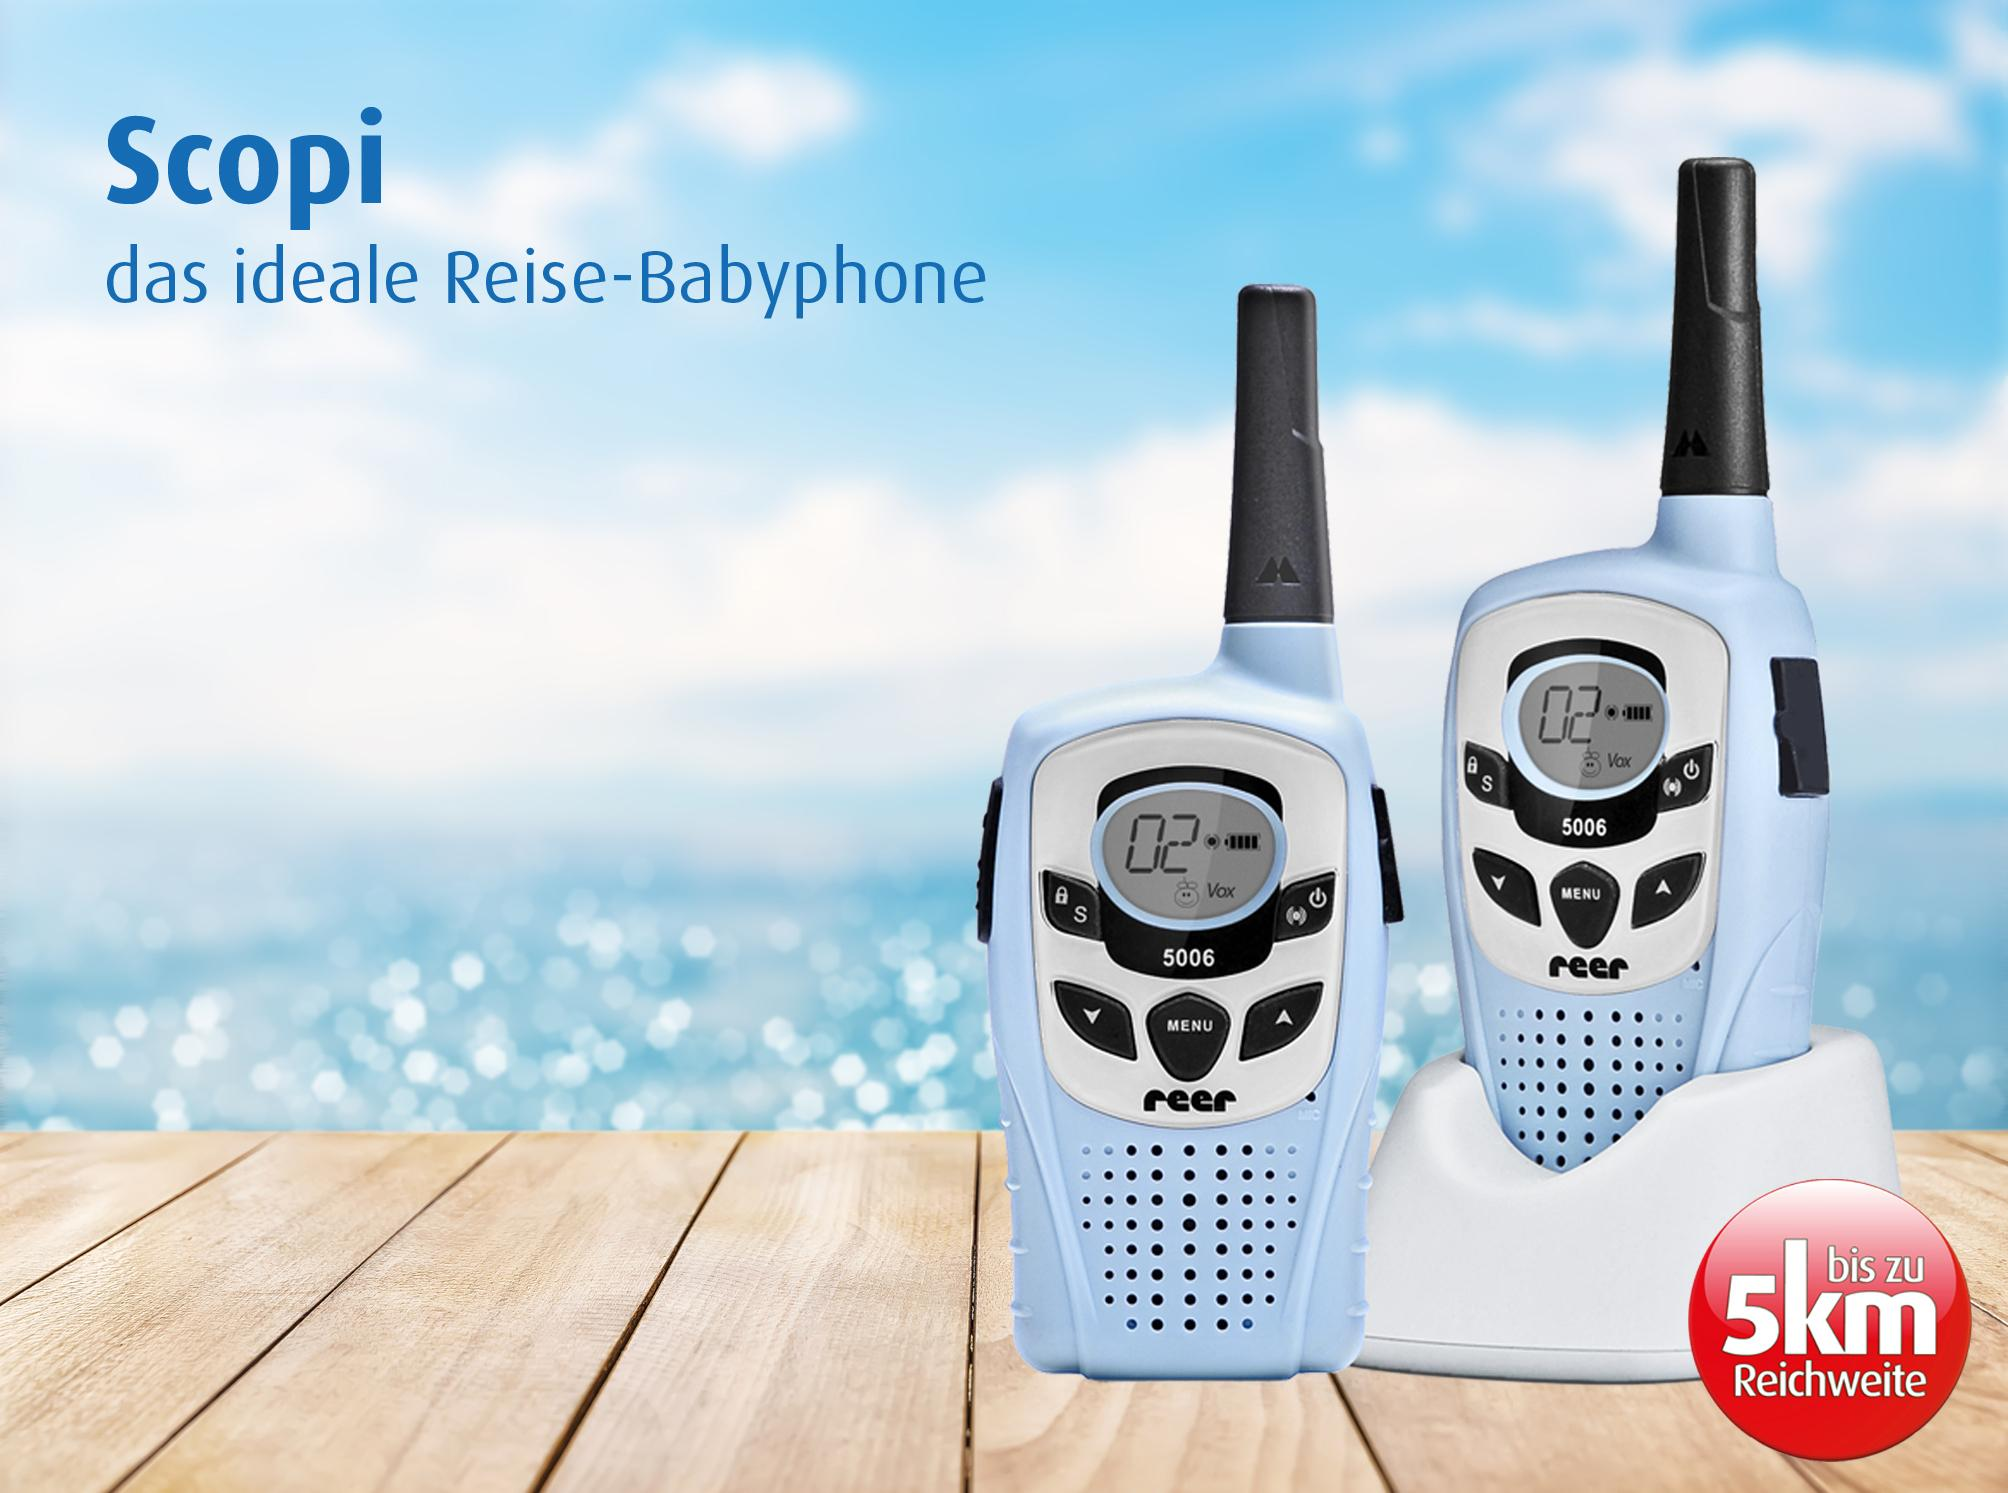 reer 5006 babyphone walkie talkie scopi 5km reichweite baby. Black Bedroom Furniture Sets. Home Design Ideas